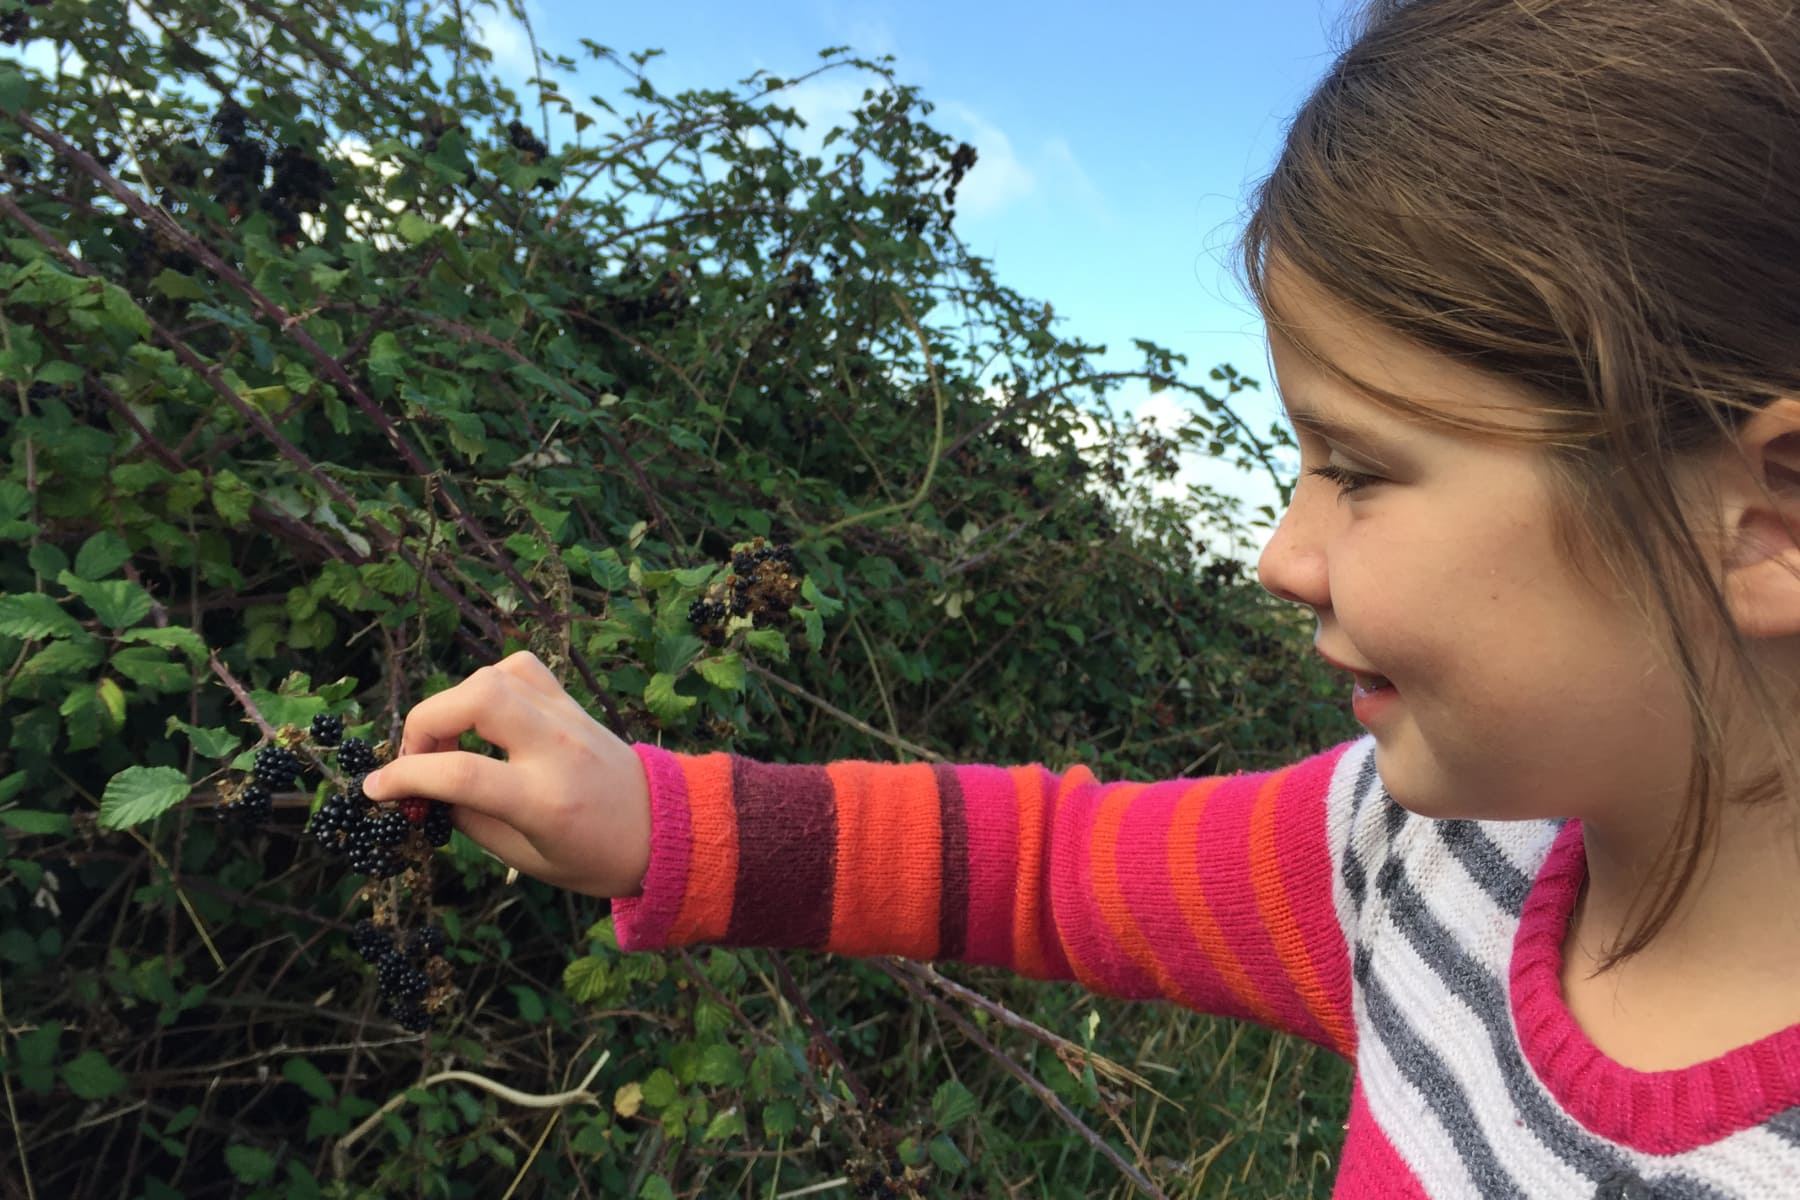 Picking blackberries.